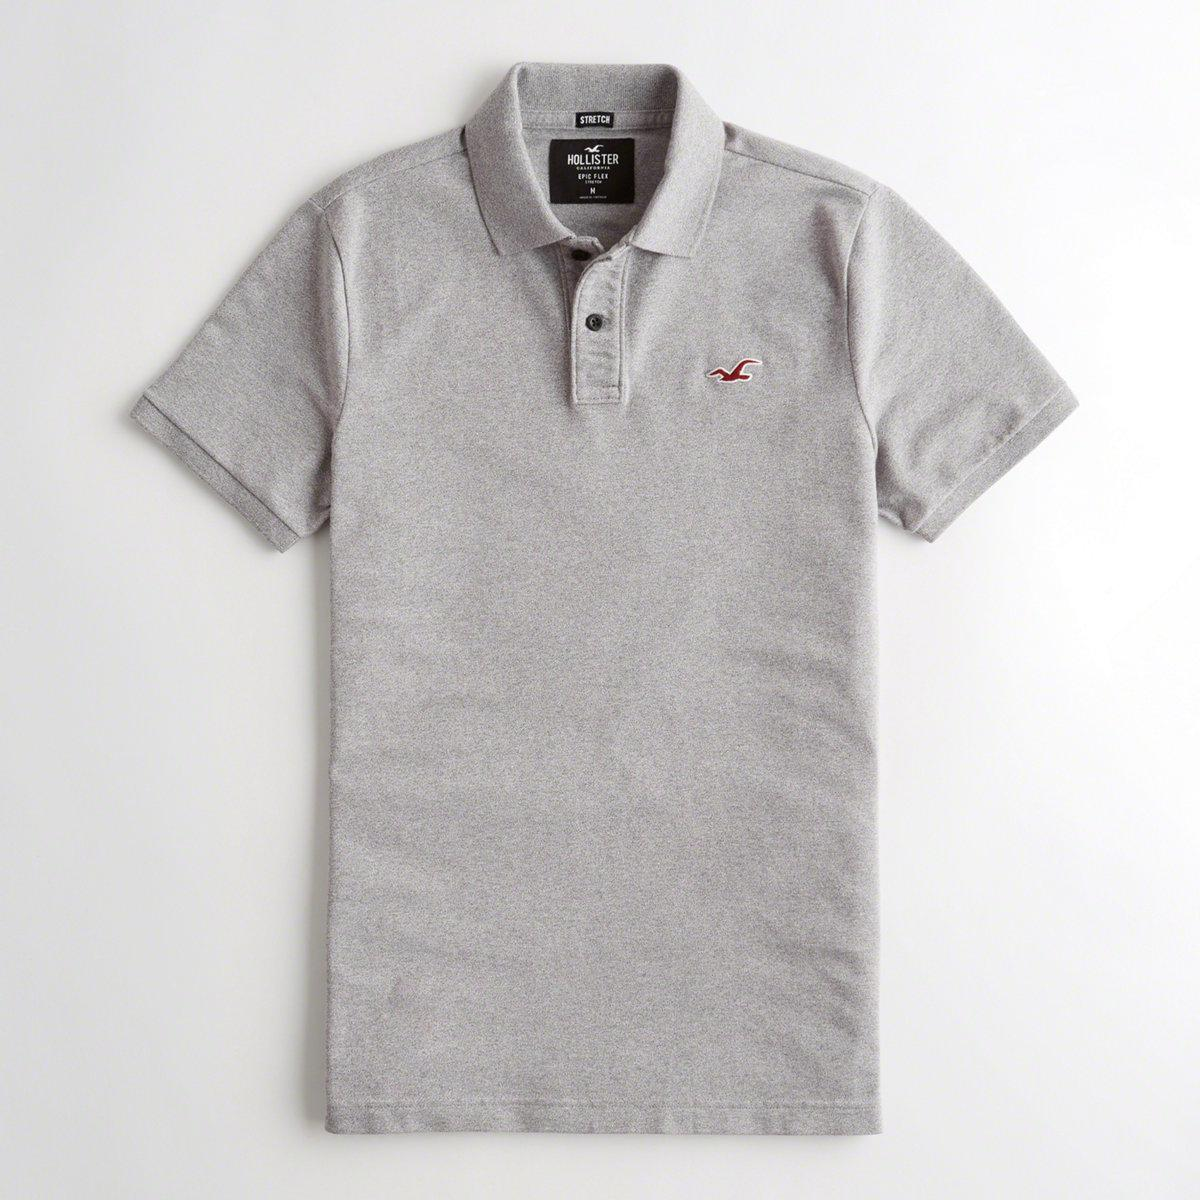 795507f7 Lyst - Hollister Guys Stretch Slim Fit Polo From Hollister in Gray ...